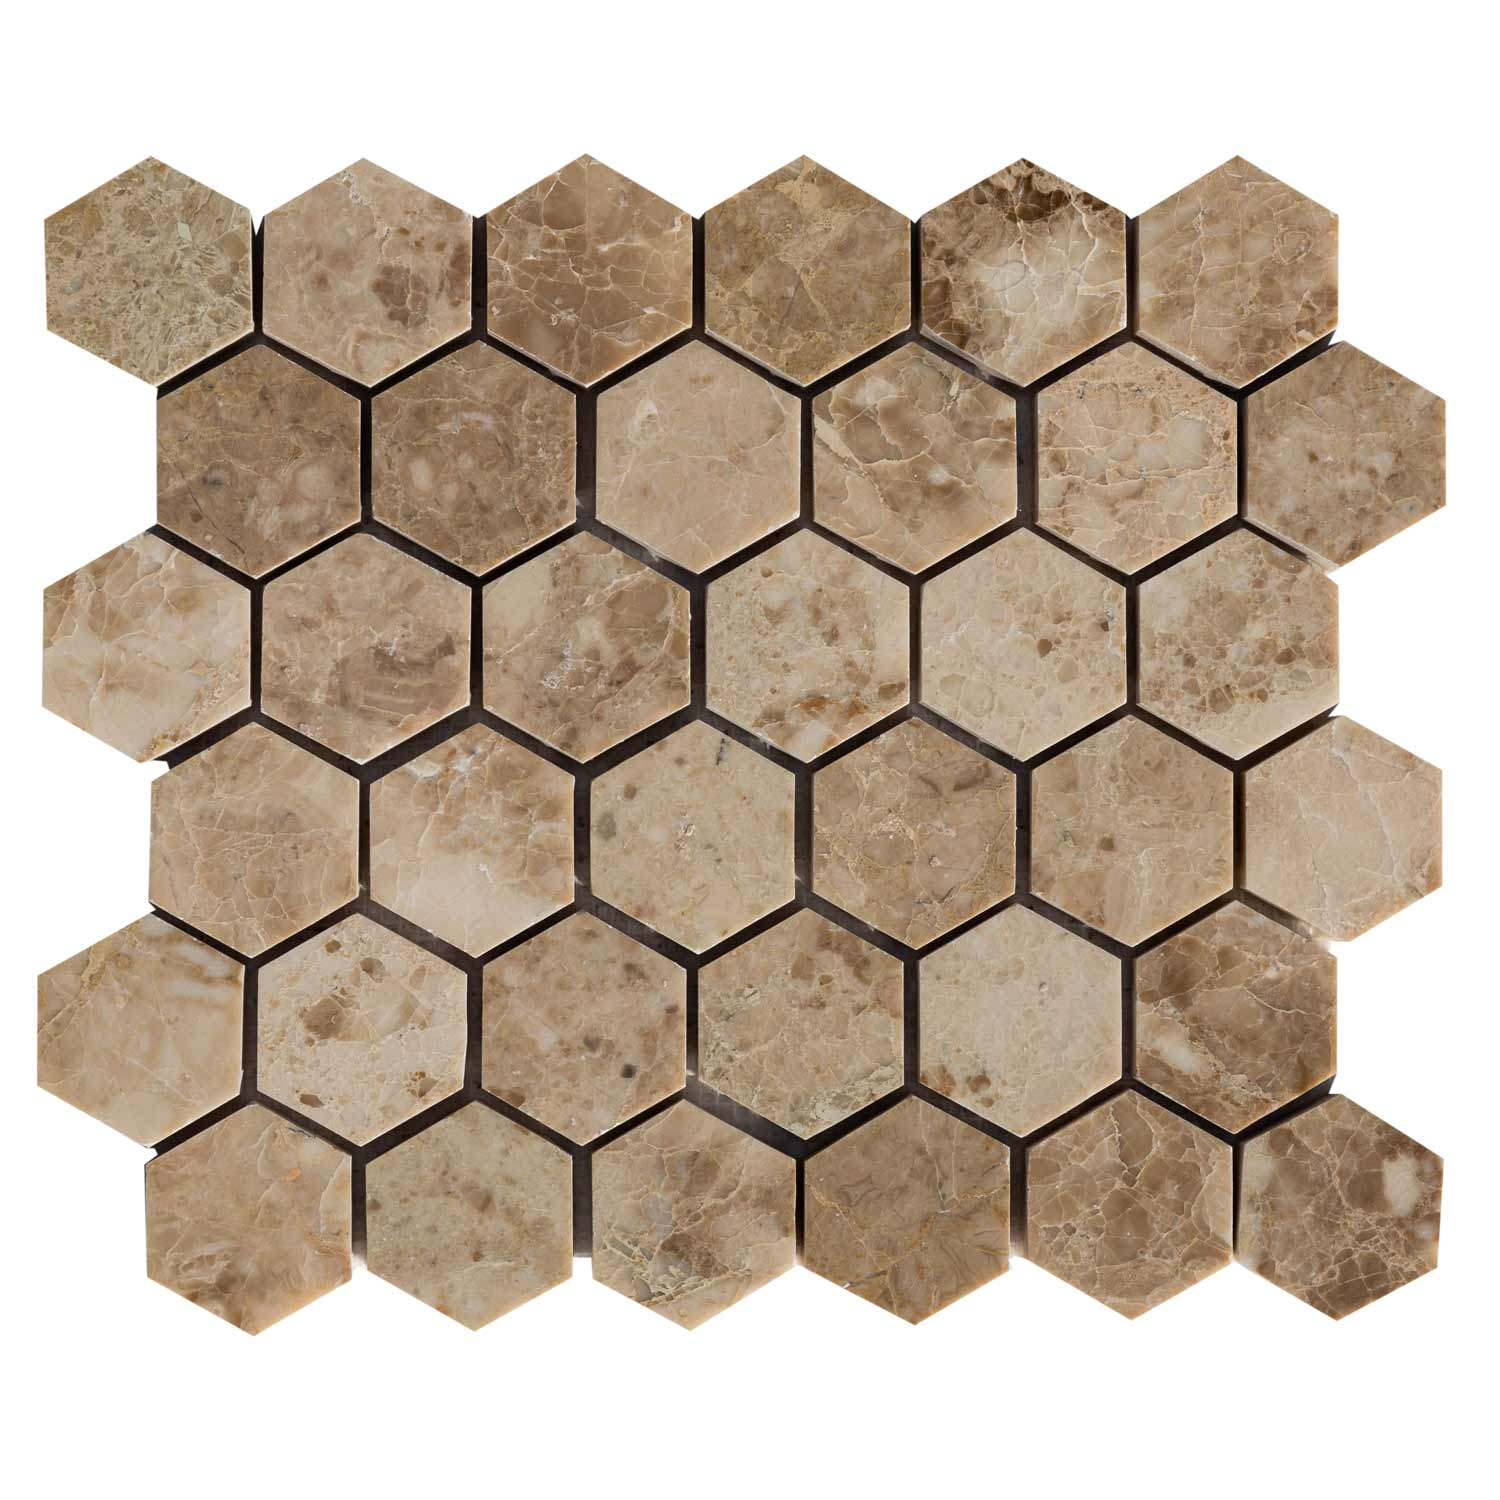 20020069-cappuccino-marble-mosaics-polished-2-hexagon-top-single-view-www.mayausatile